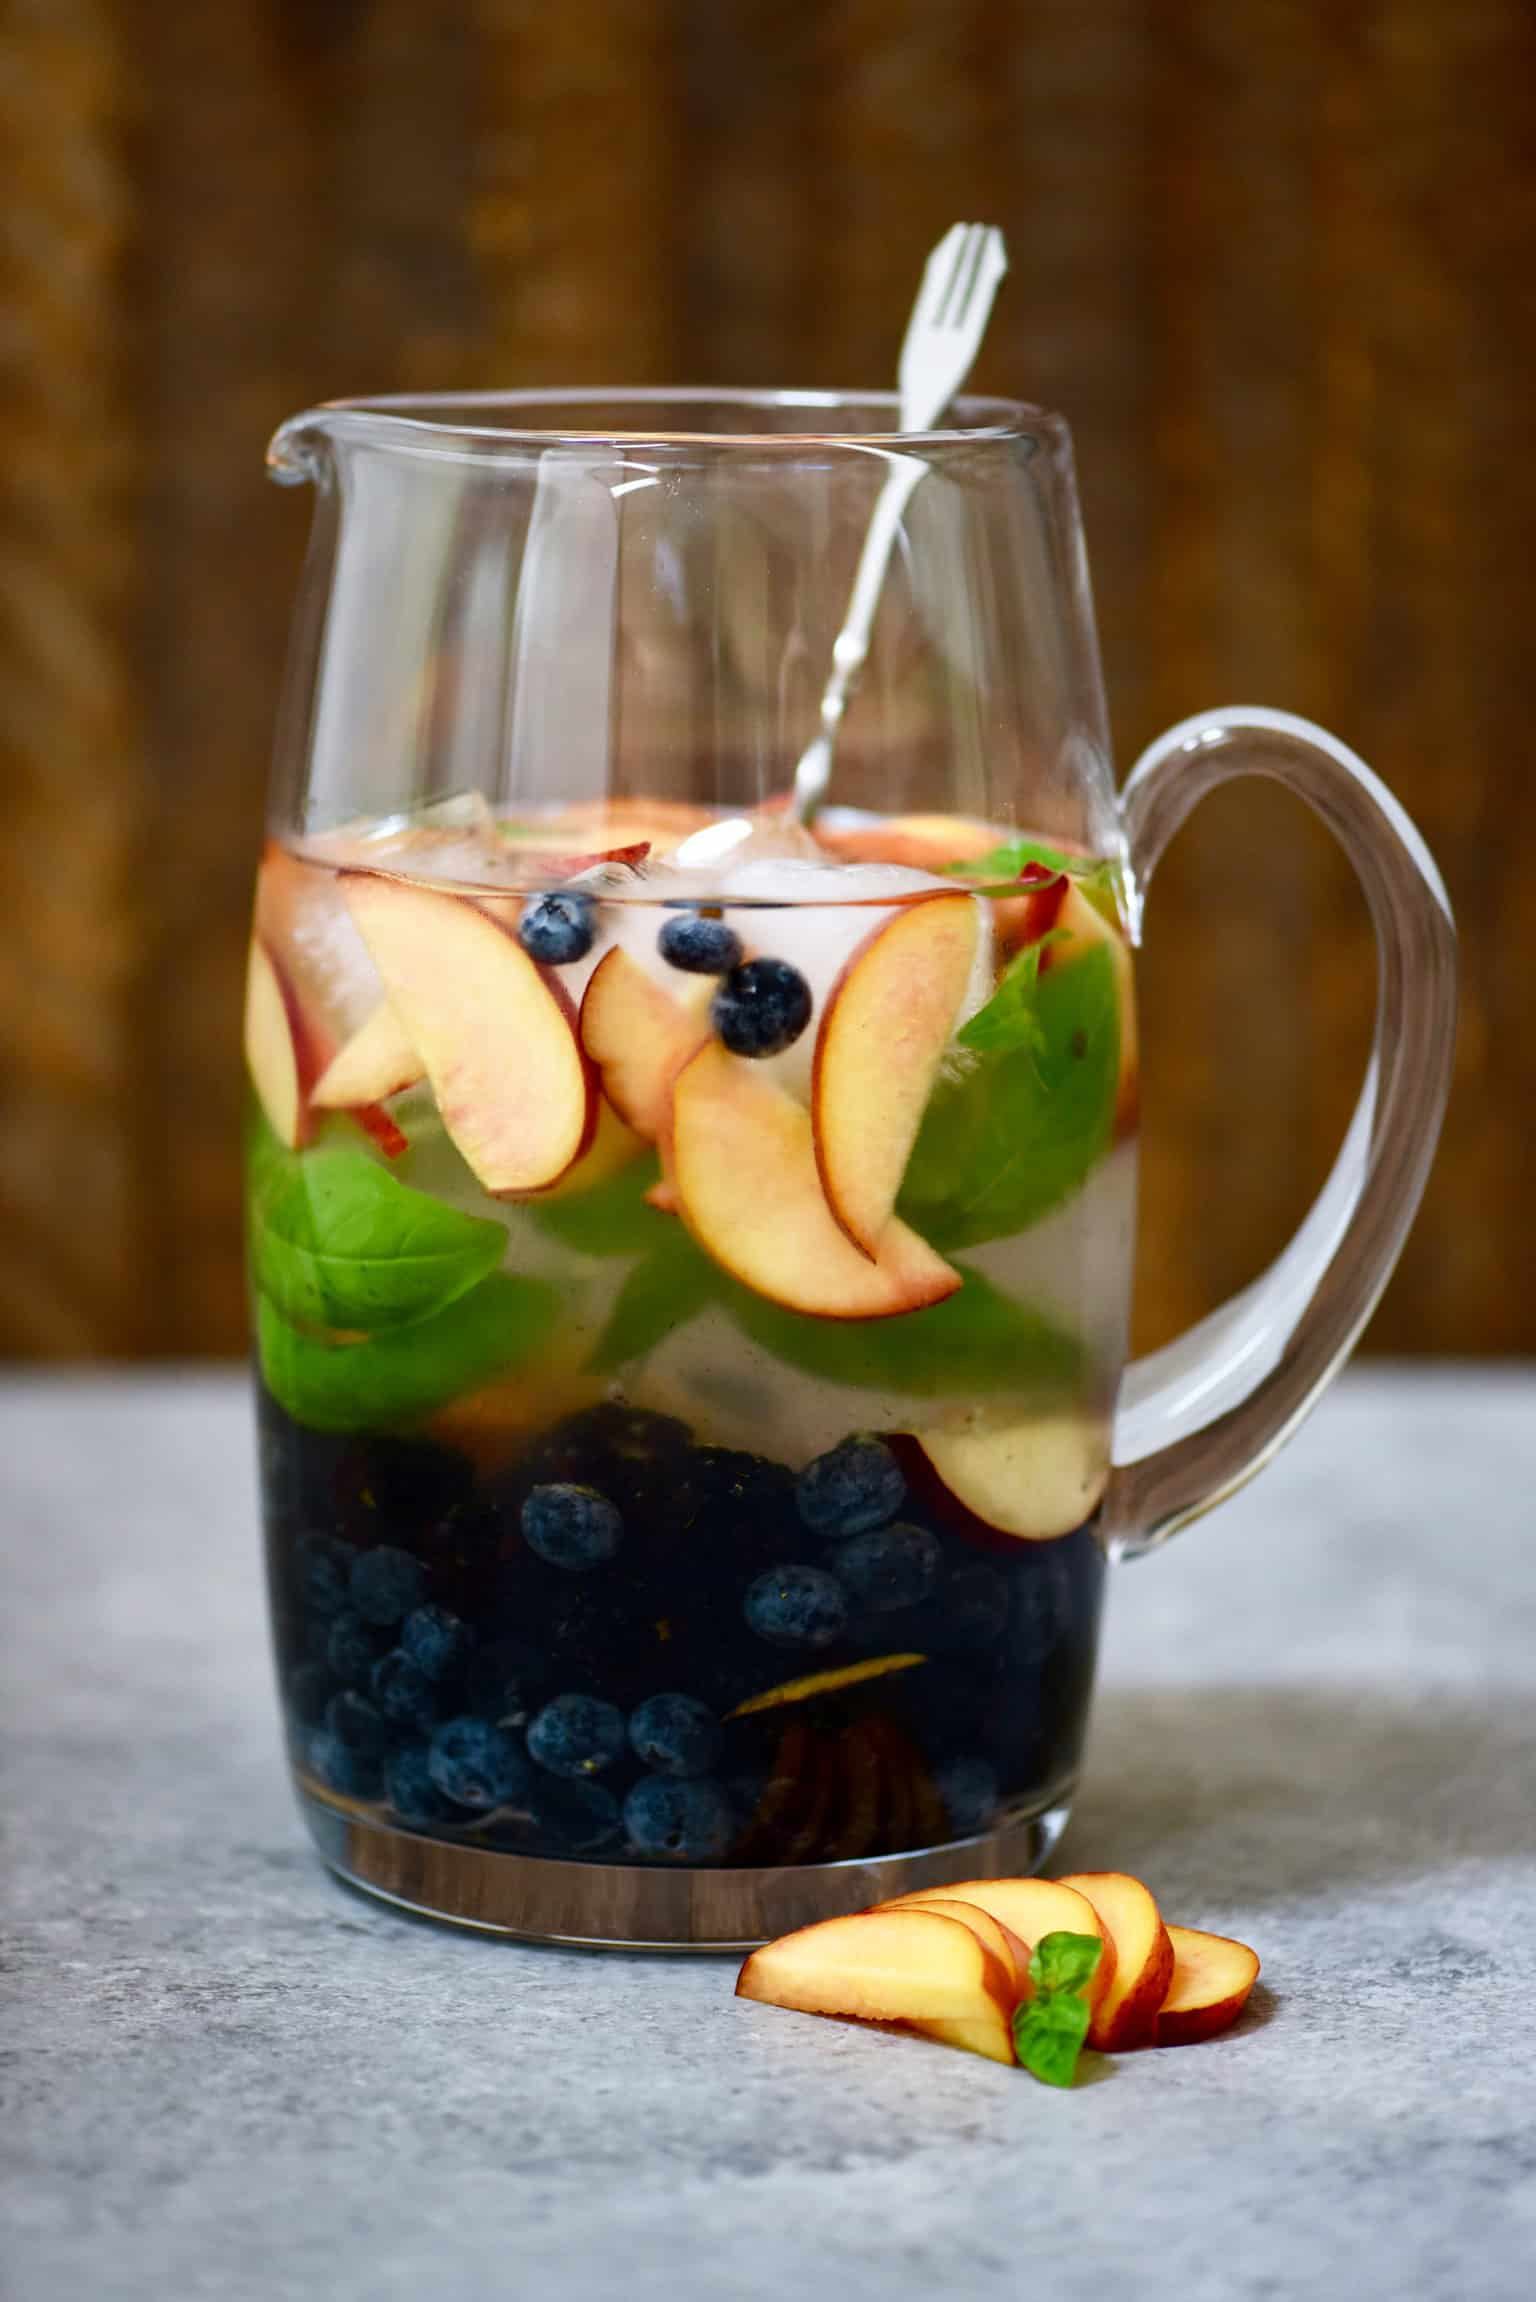 Large pitcher of peach, blueberry and basil infused water